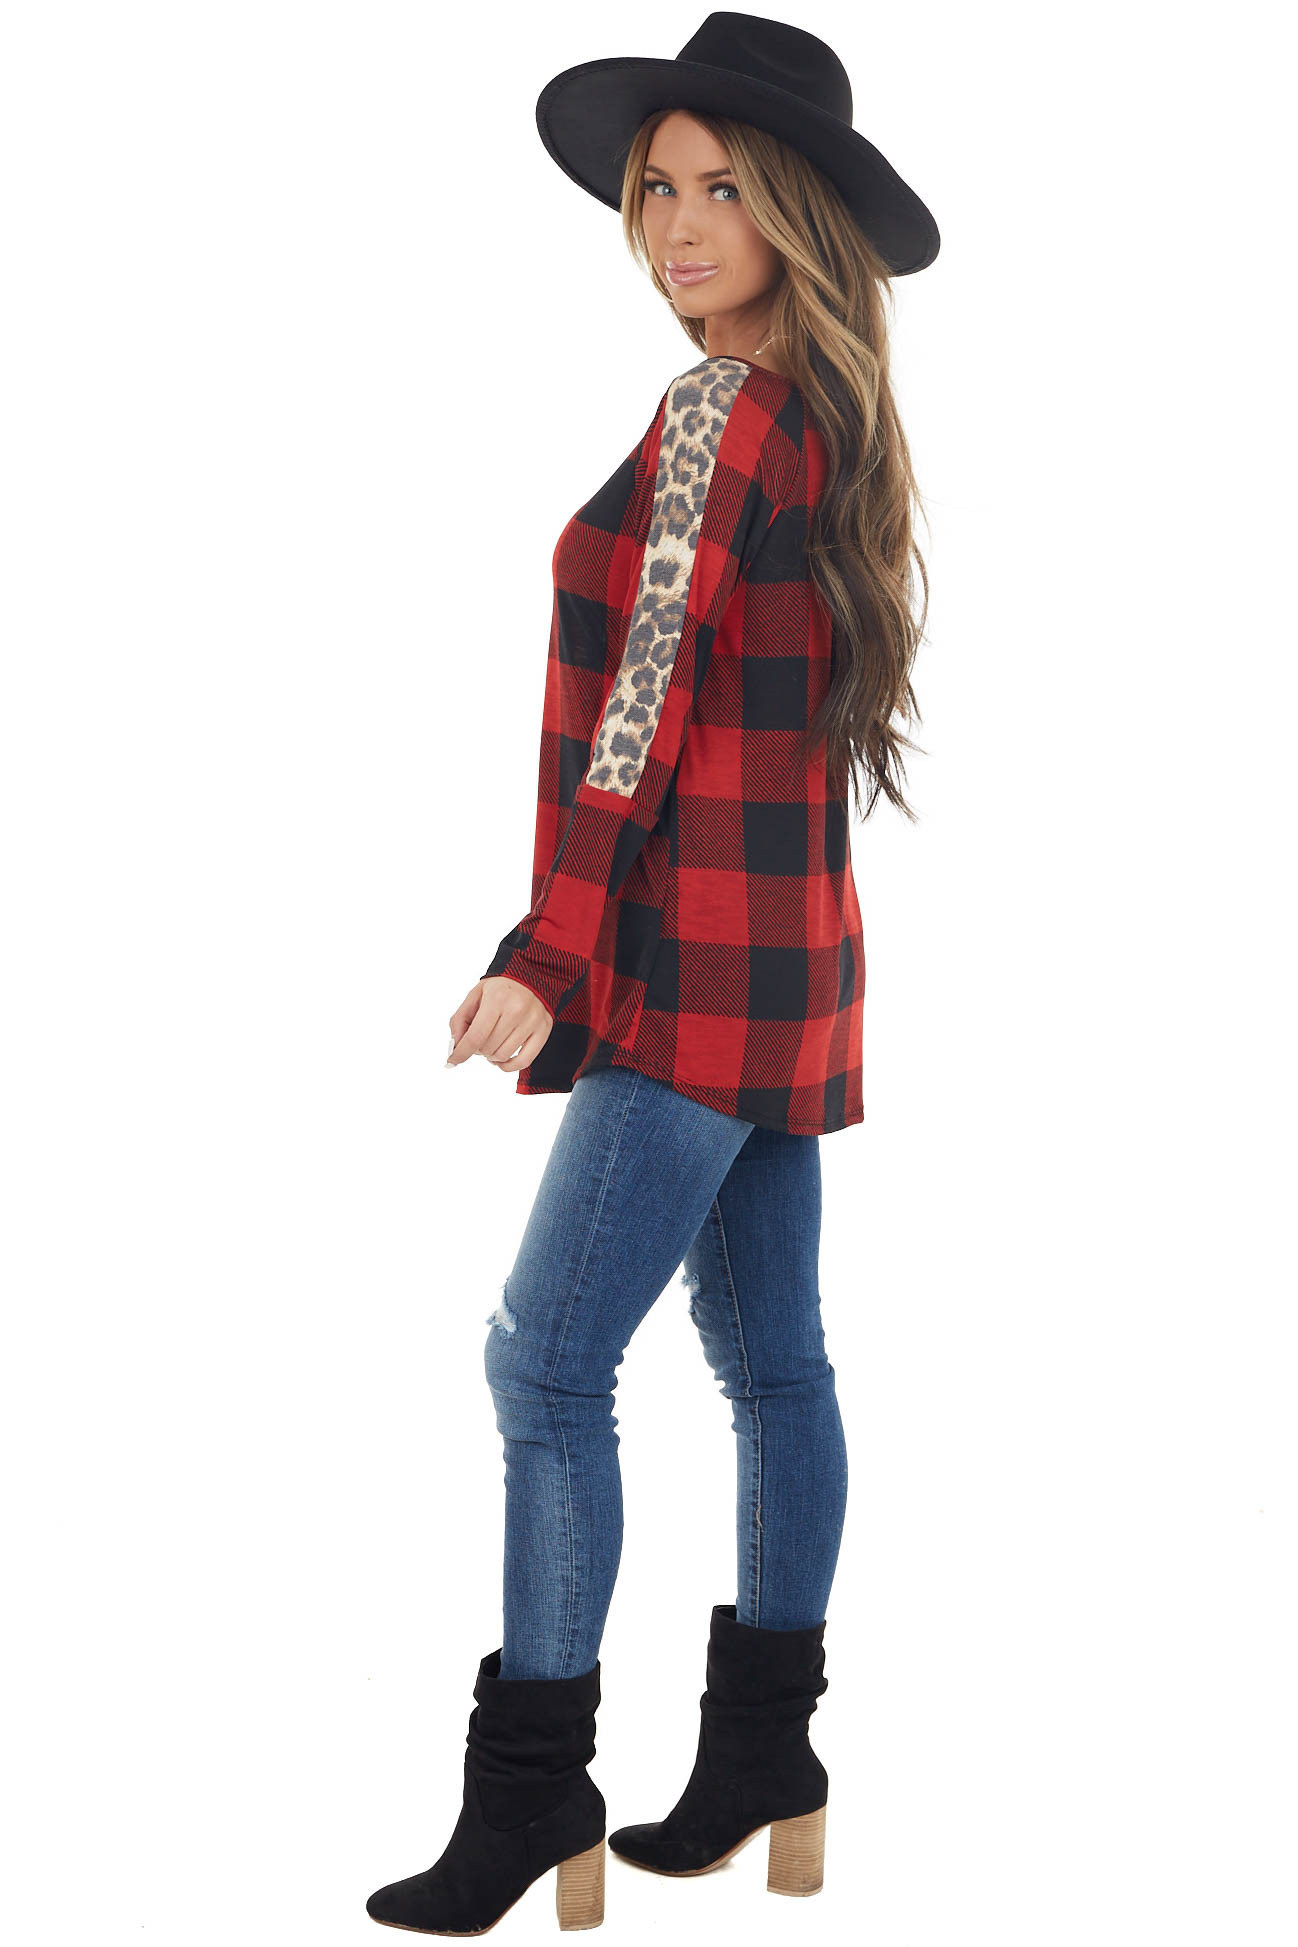 Cherry Red and Black Buffalo Plaid Top with Leopard Print